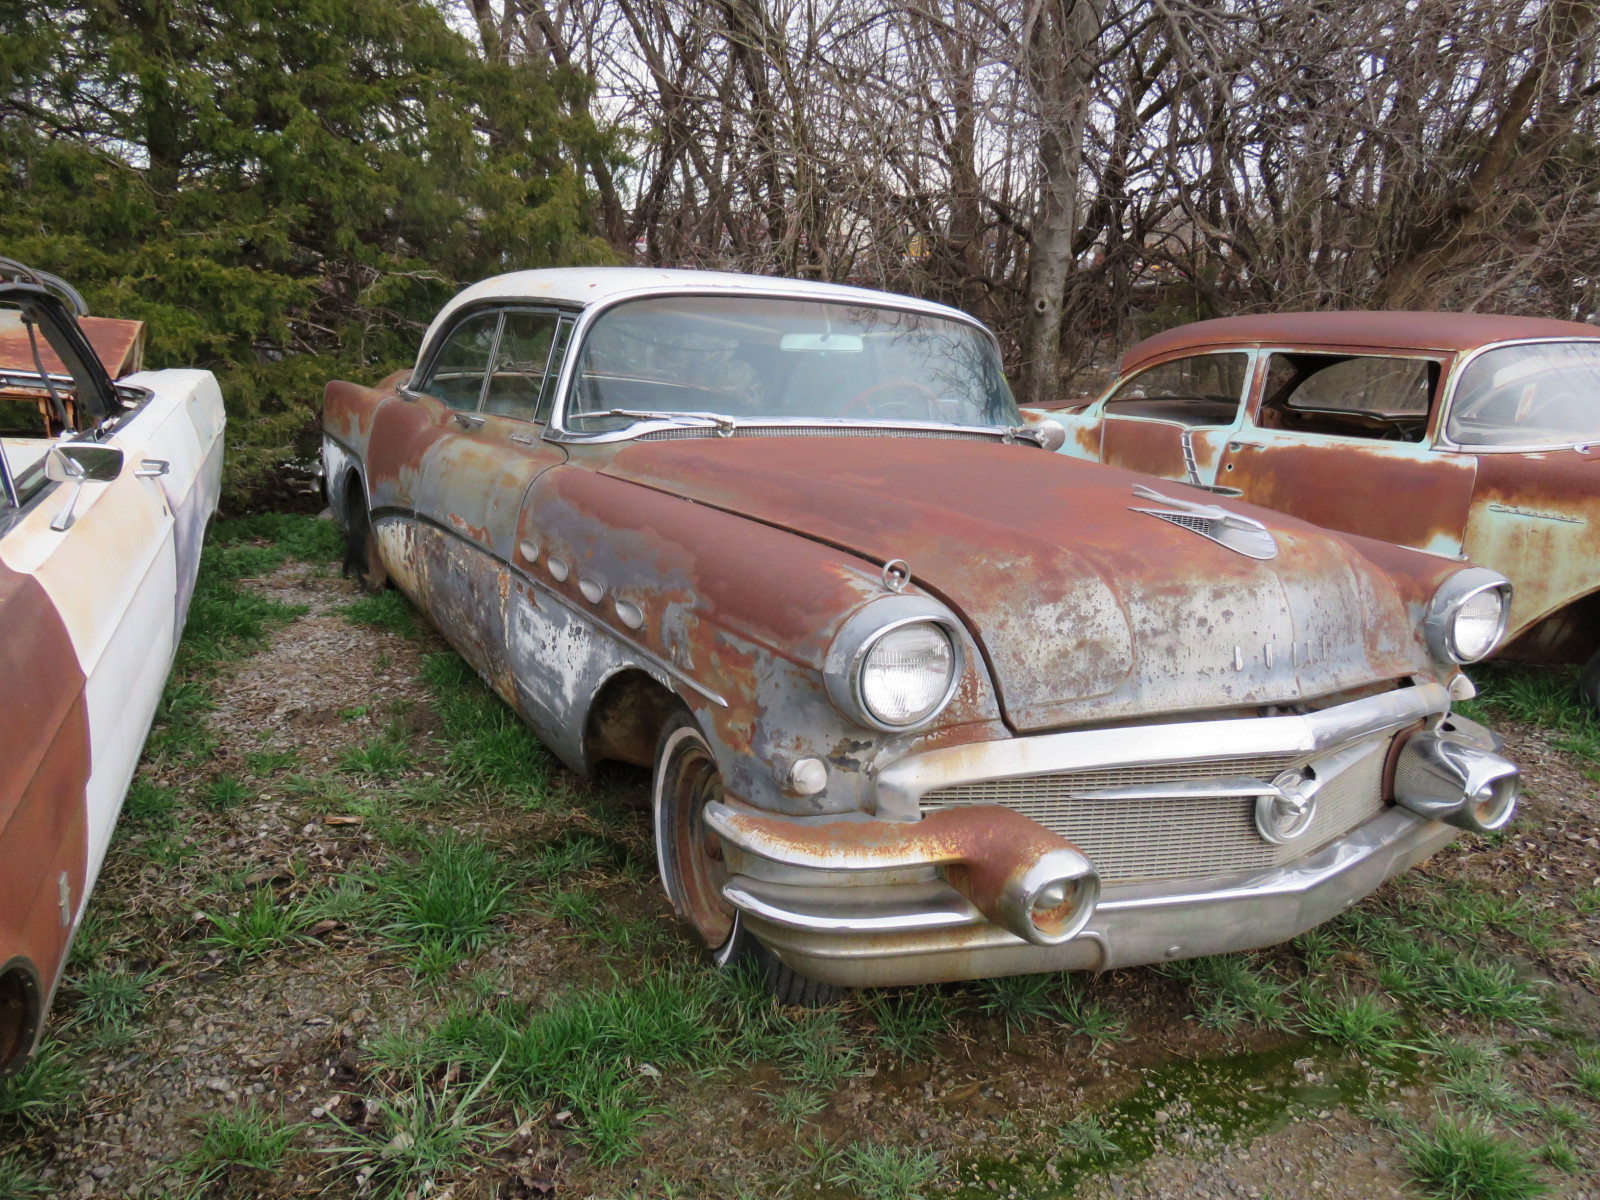 1956 Buick Roadmaster 4dr HT C1076048 - Image 2